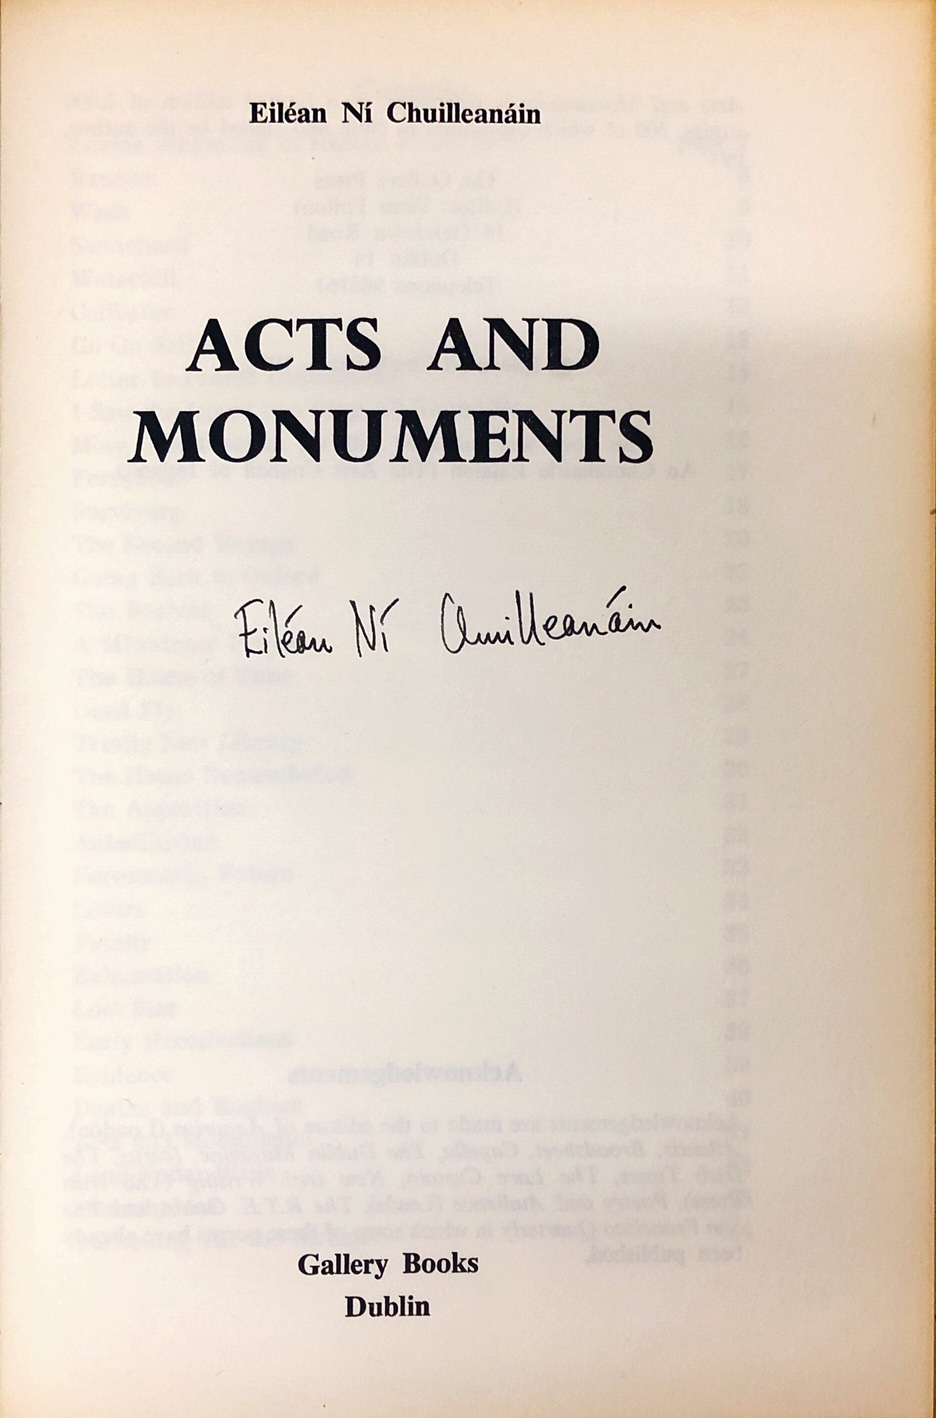 Lot 25 - Irish Female Poets: Ní Chuilleanáin (Eileán) Acts and Monuments, Gallery 1972; Site of Ambush,